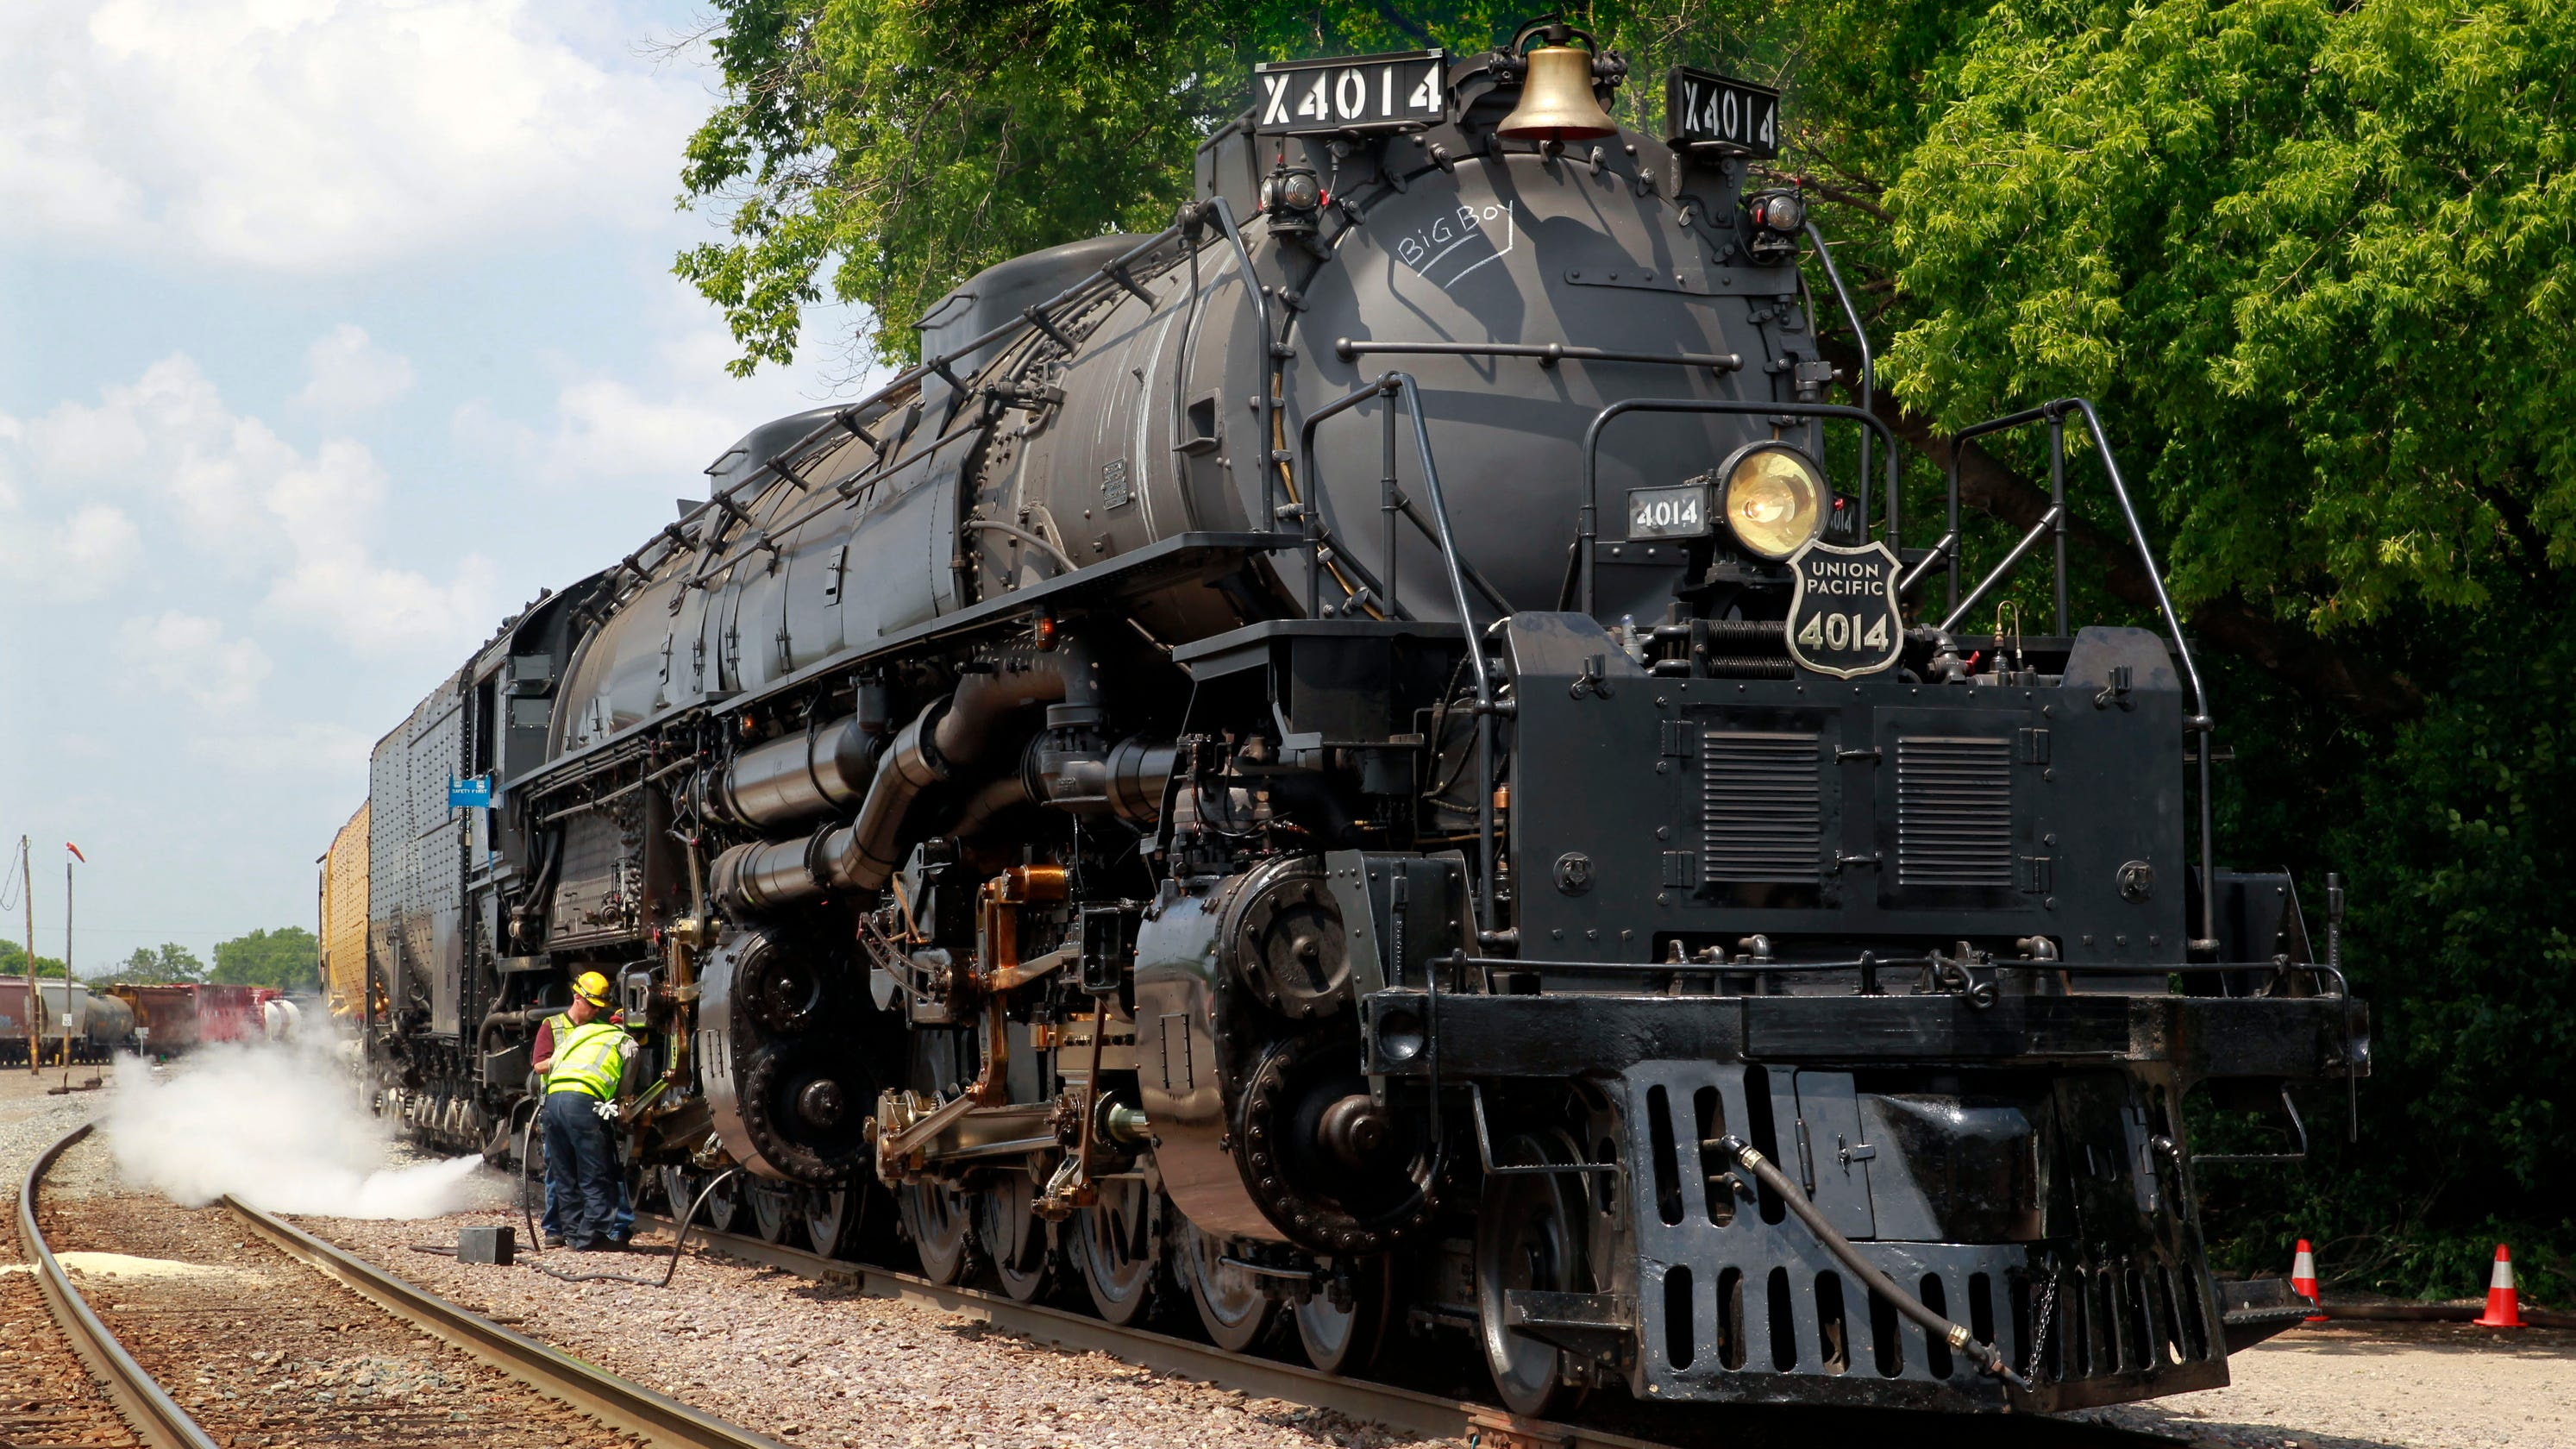 Train enthusiasts gather to see restored Big Boy No. 4014 ...